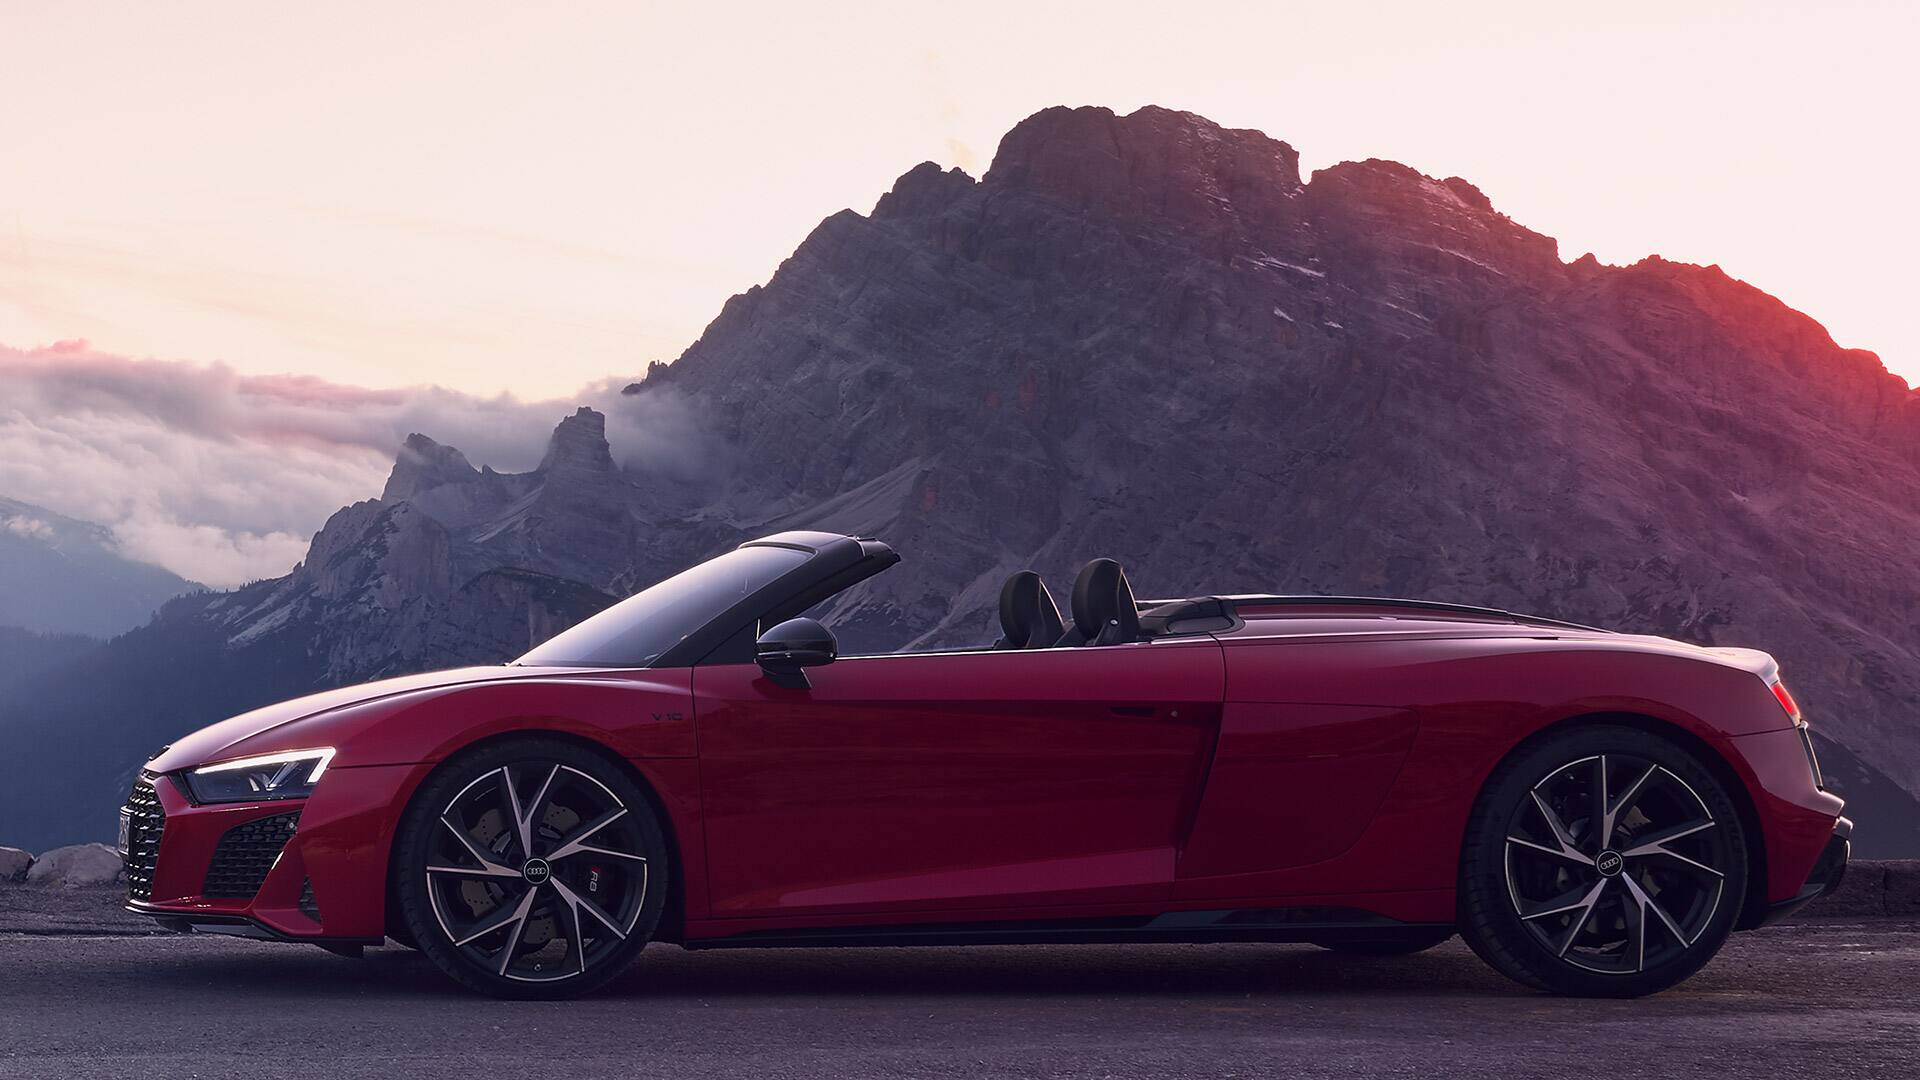 Side view Audi R8 Spyder V10 RWD